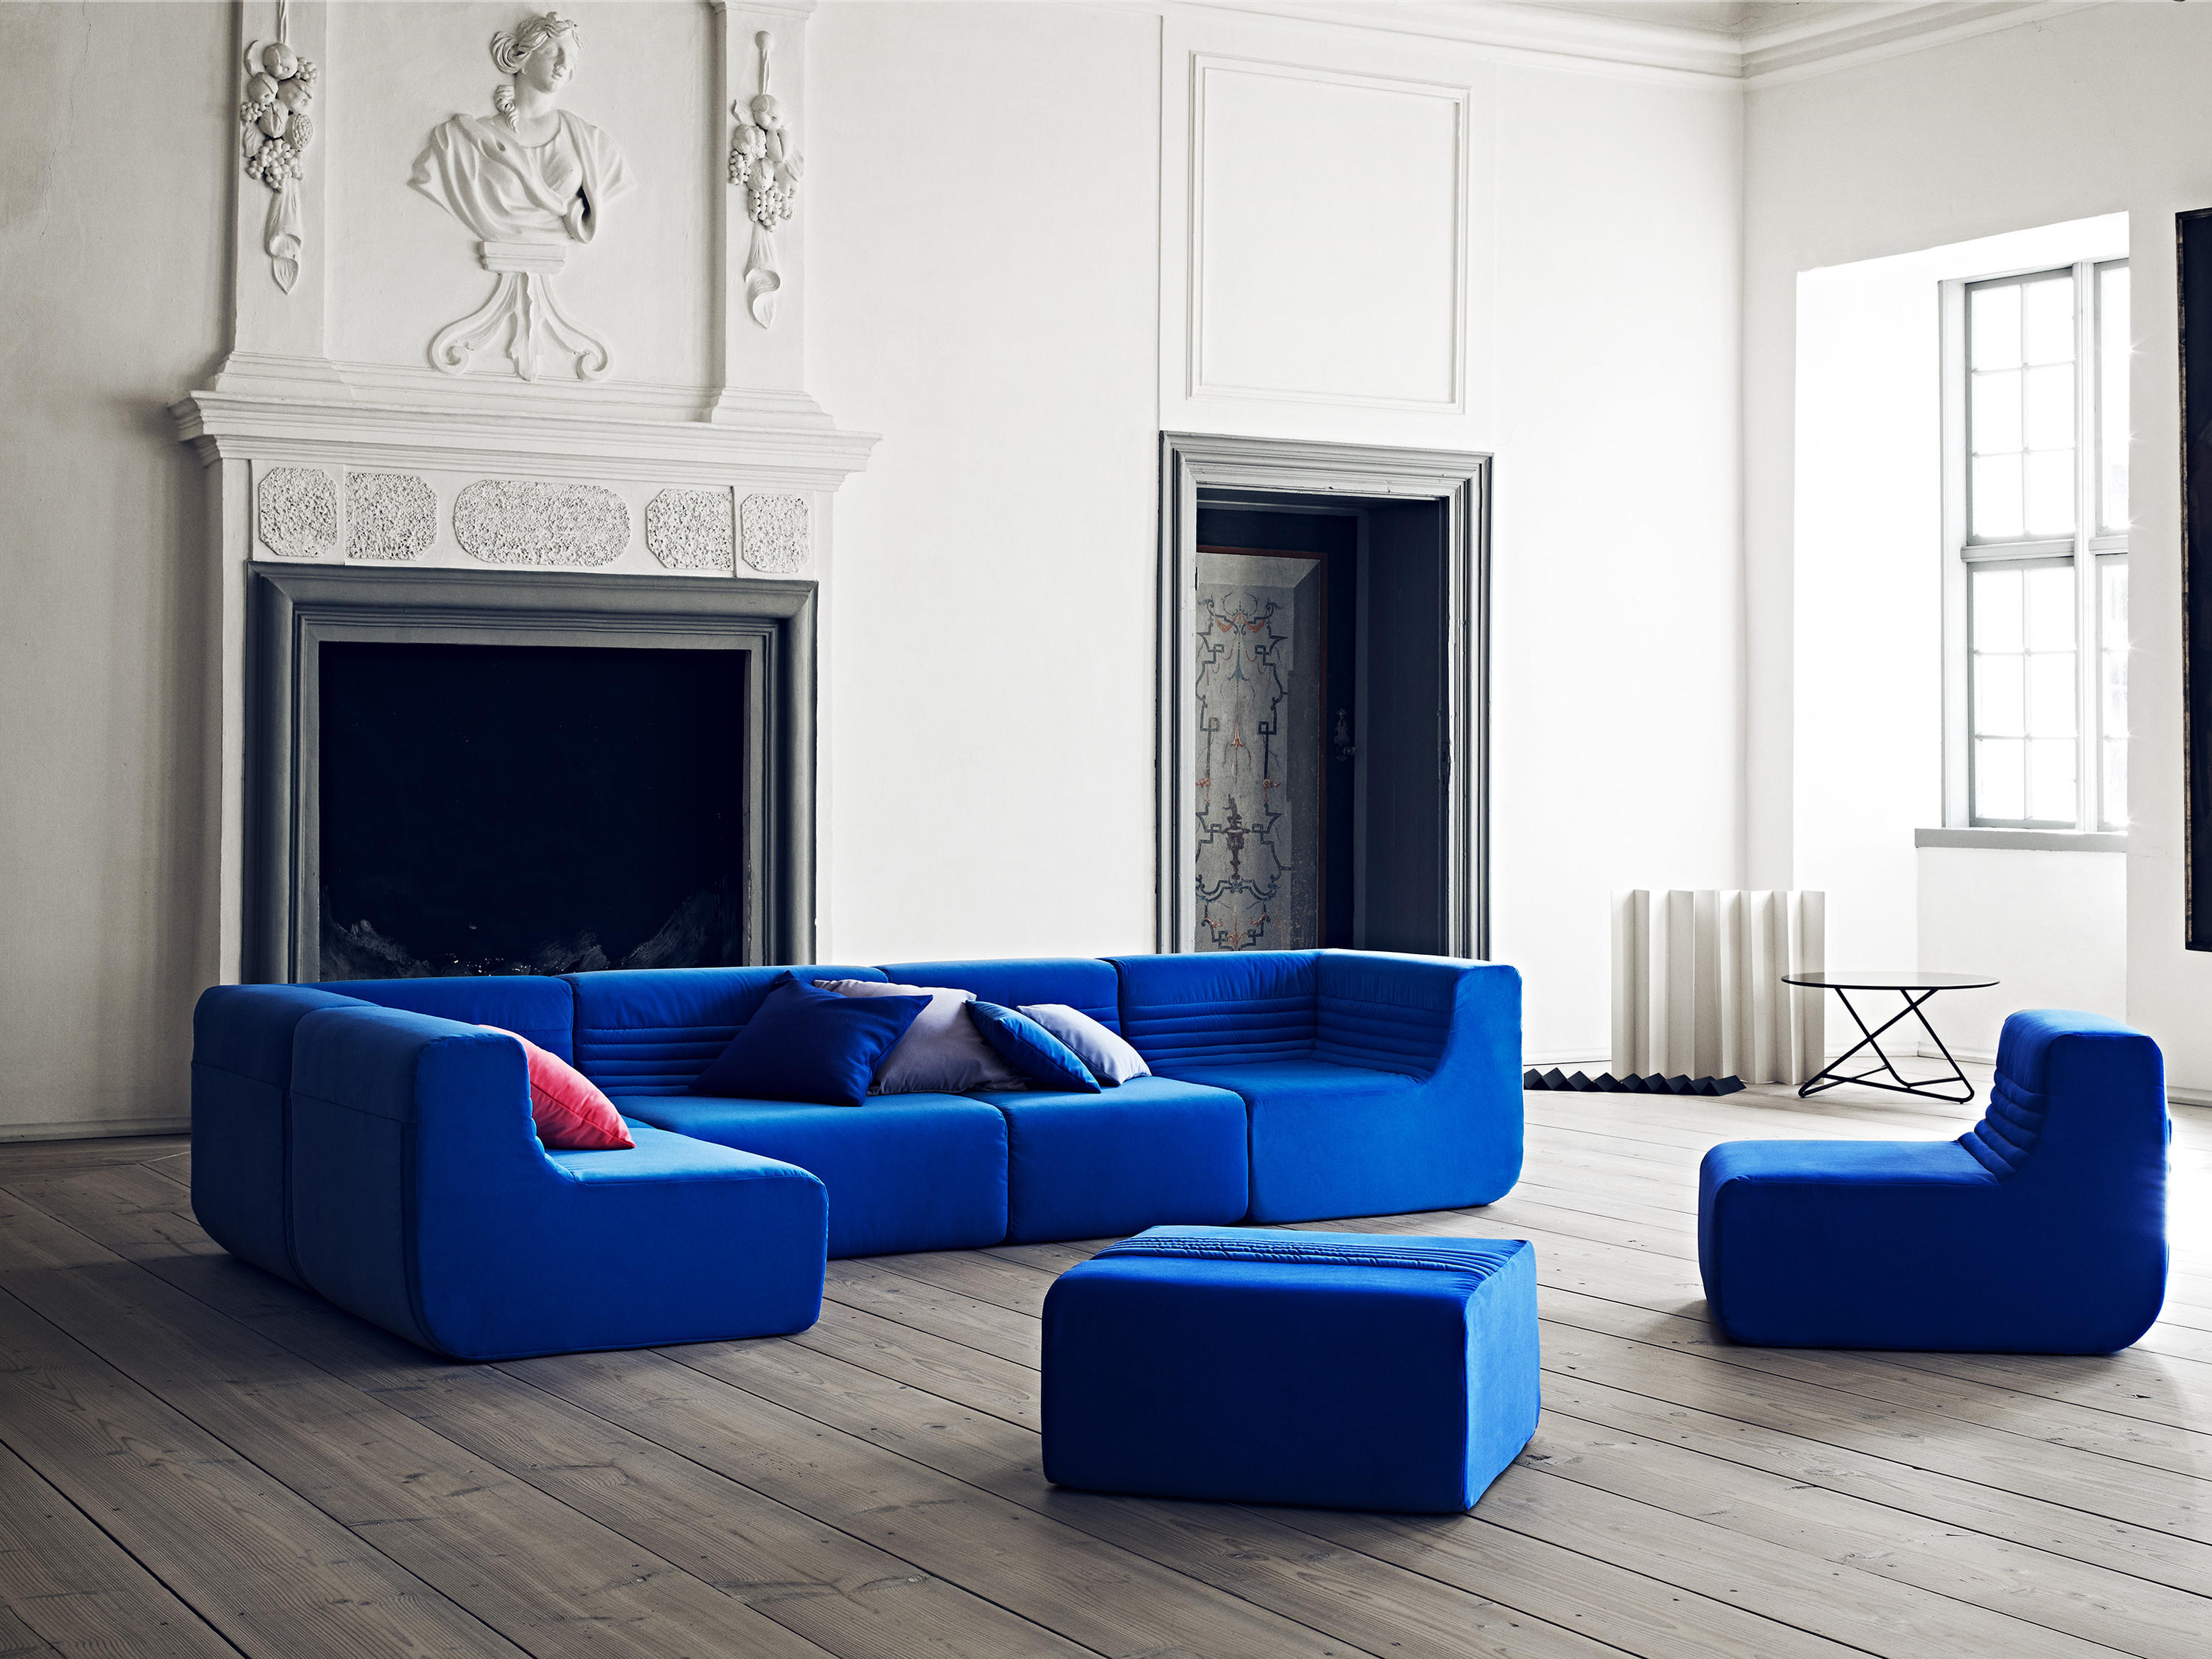 LOFT SOFA - Sofas from Softline A/S | Architonic